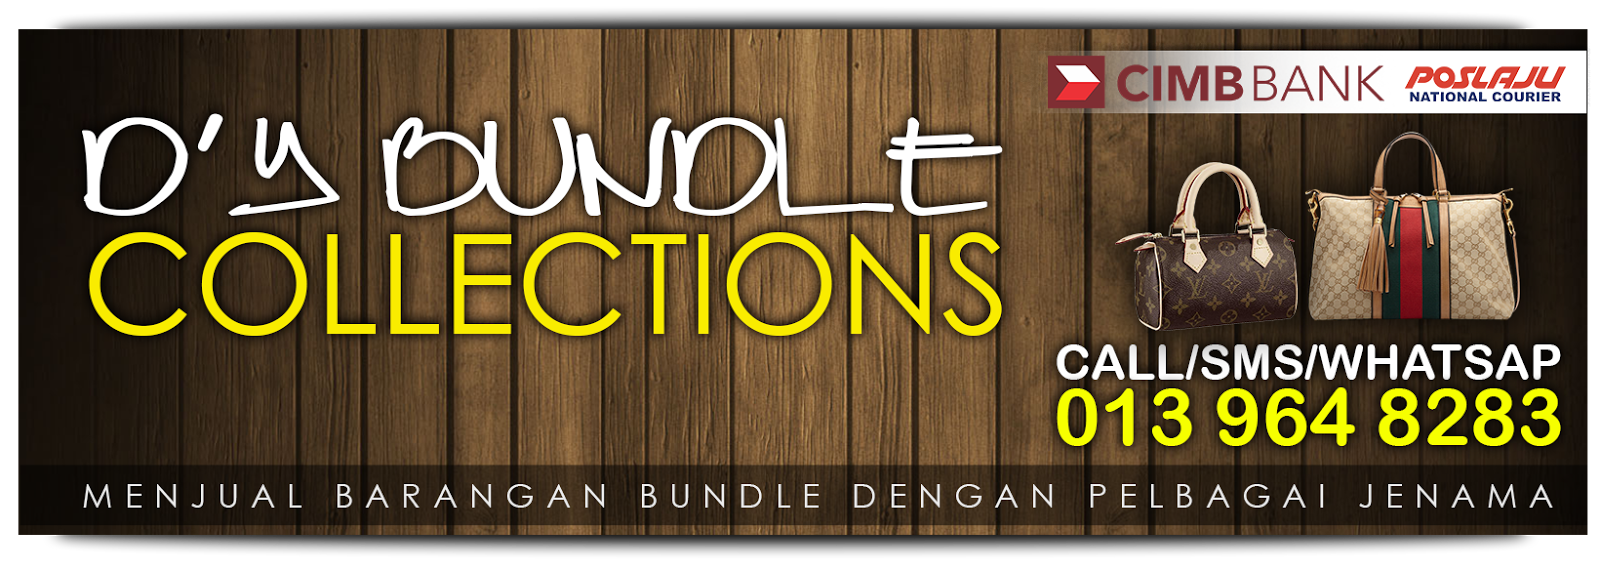 DYBUNDLE COLLECTION